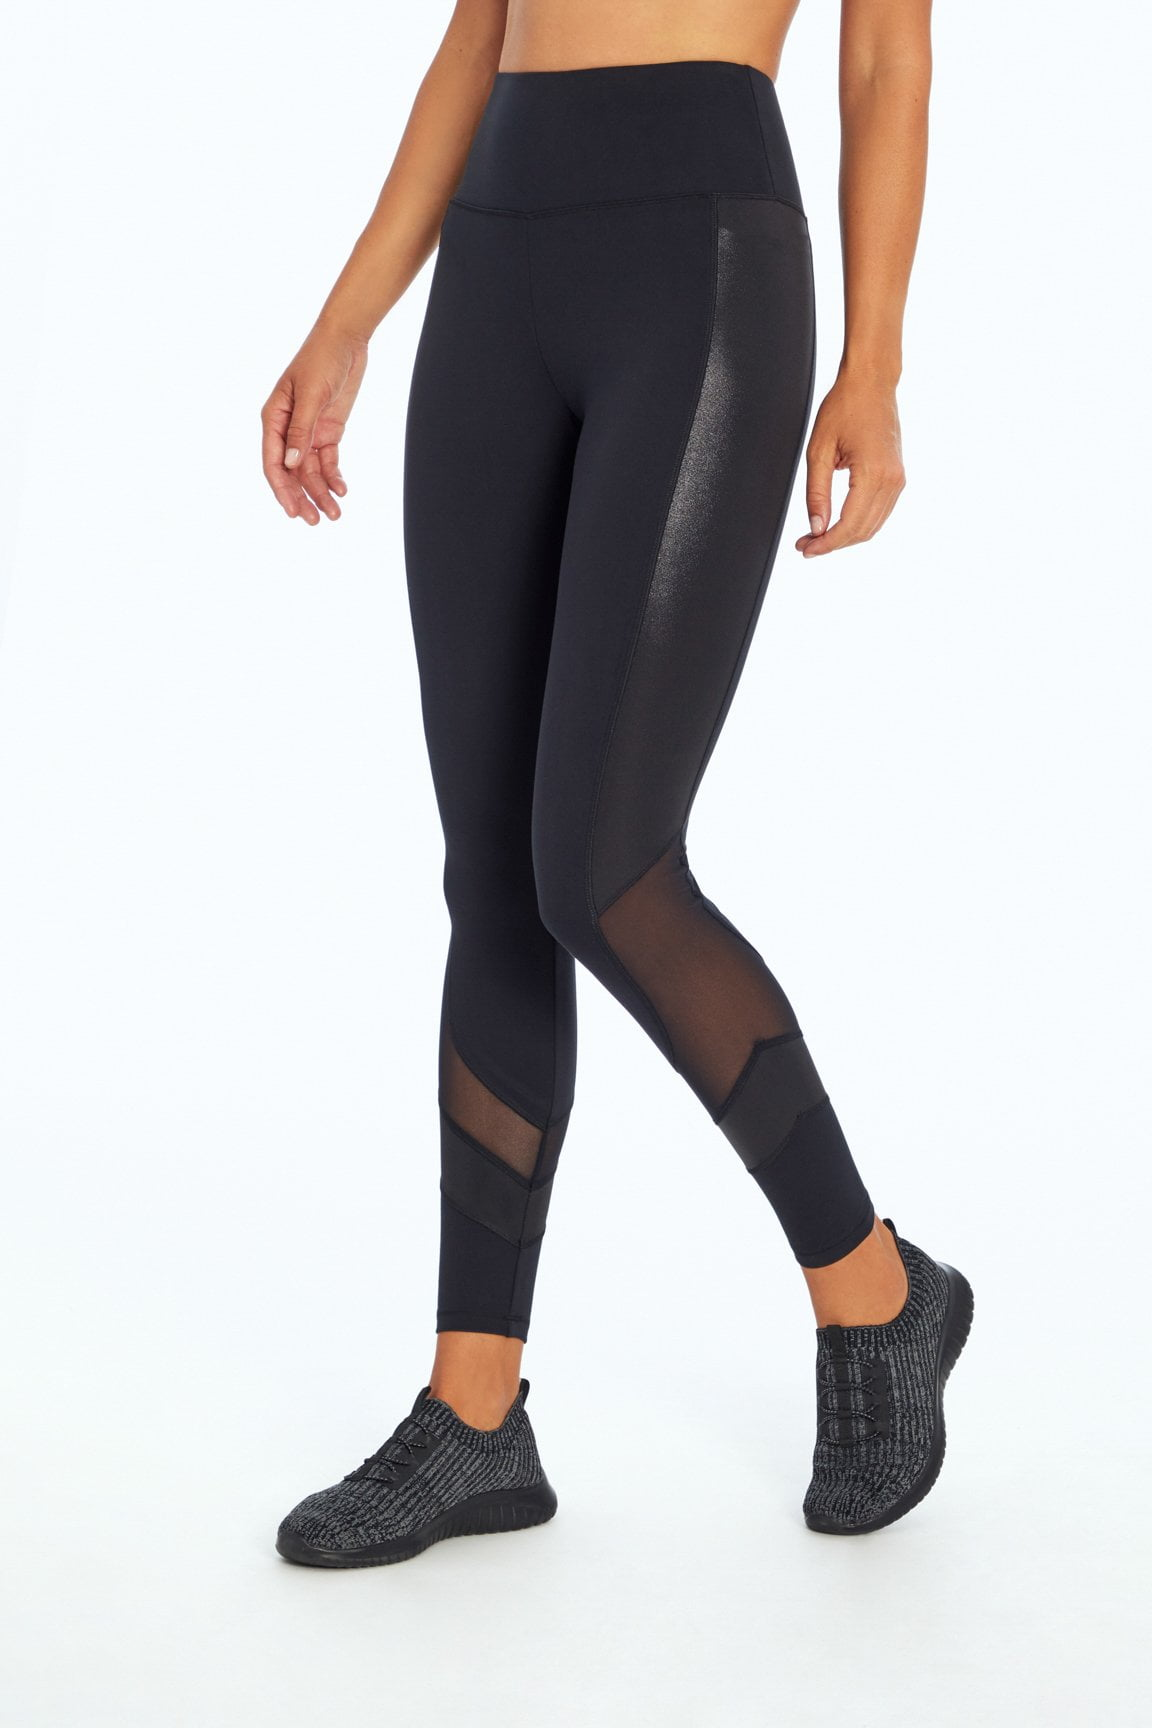 Cally Legging (Black)